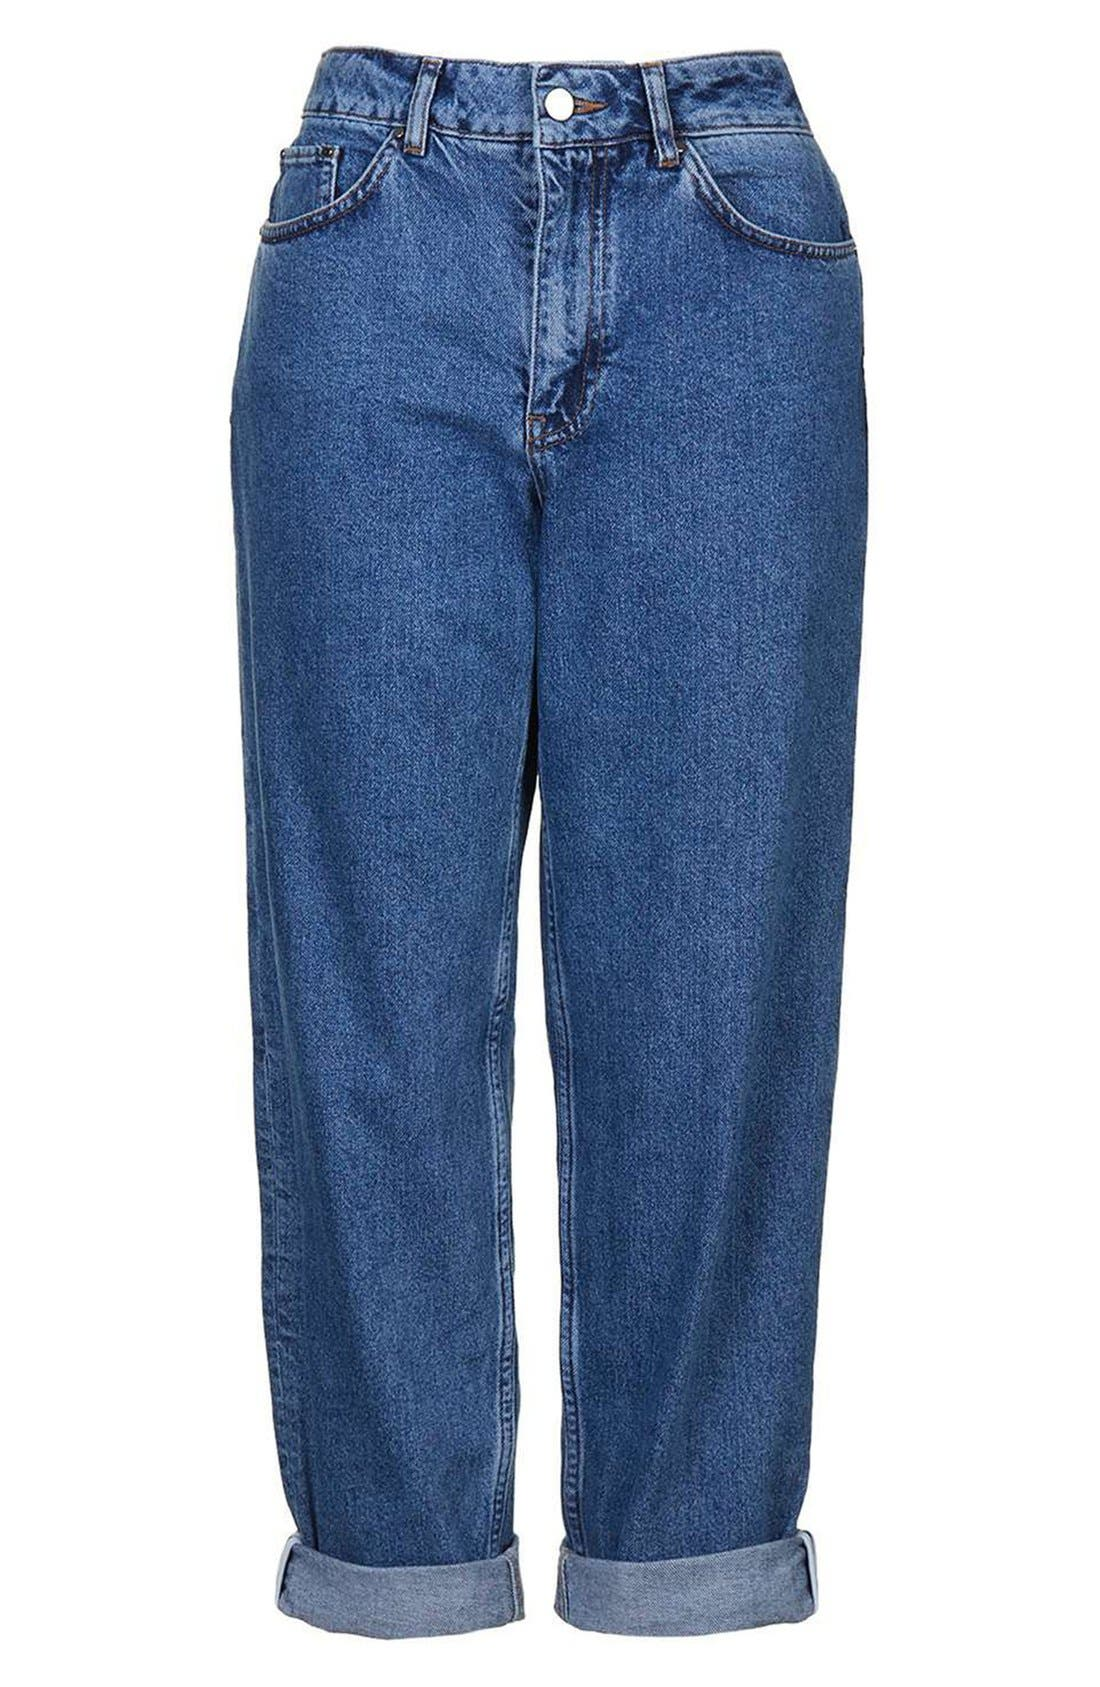 Alternate Image 4  - Topshop Boutique High Rise Relaxed Boyfriend Jeans